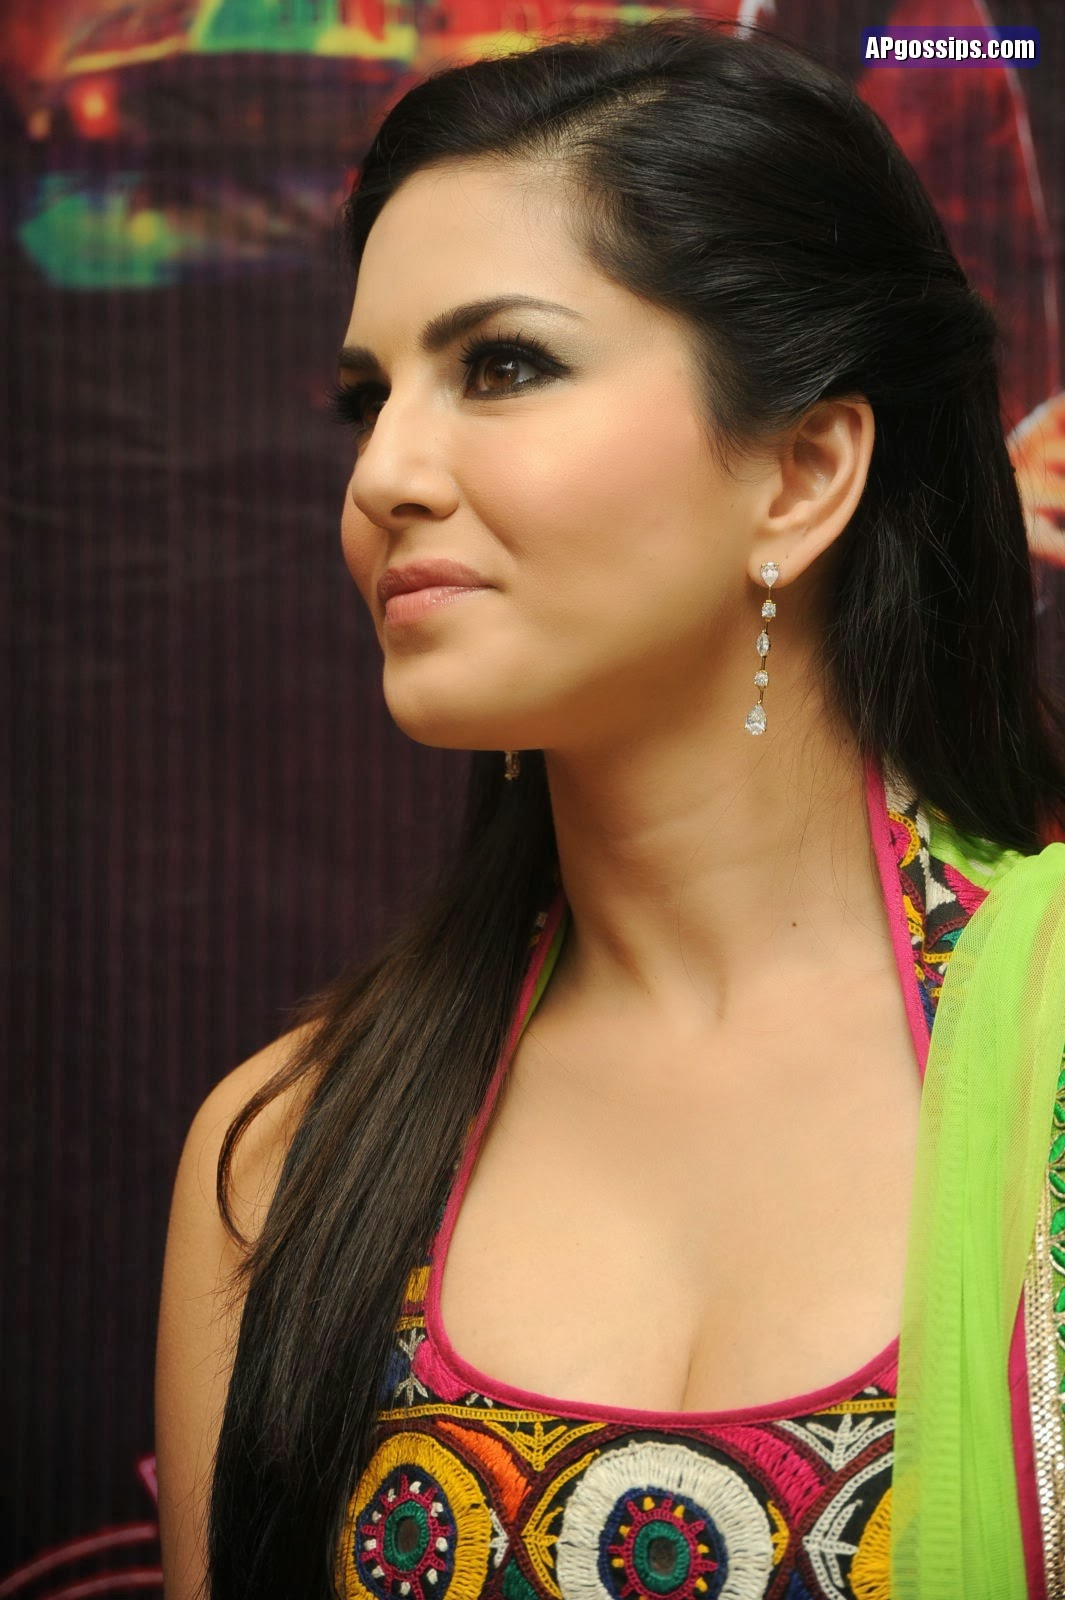 Think, Foto bokep sunny leone you thanks